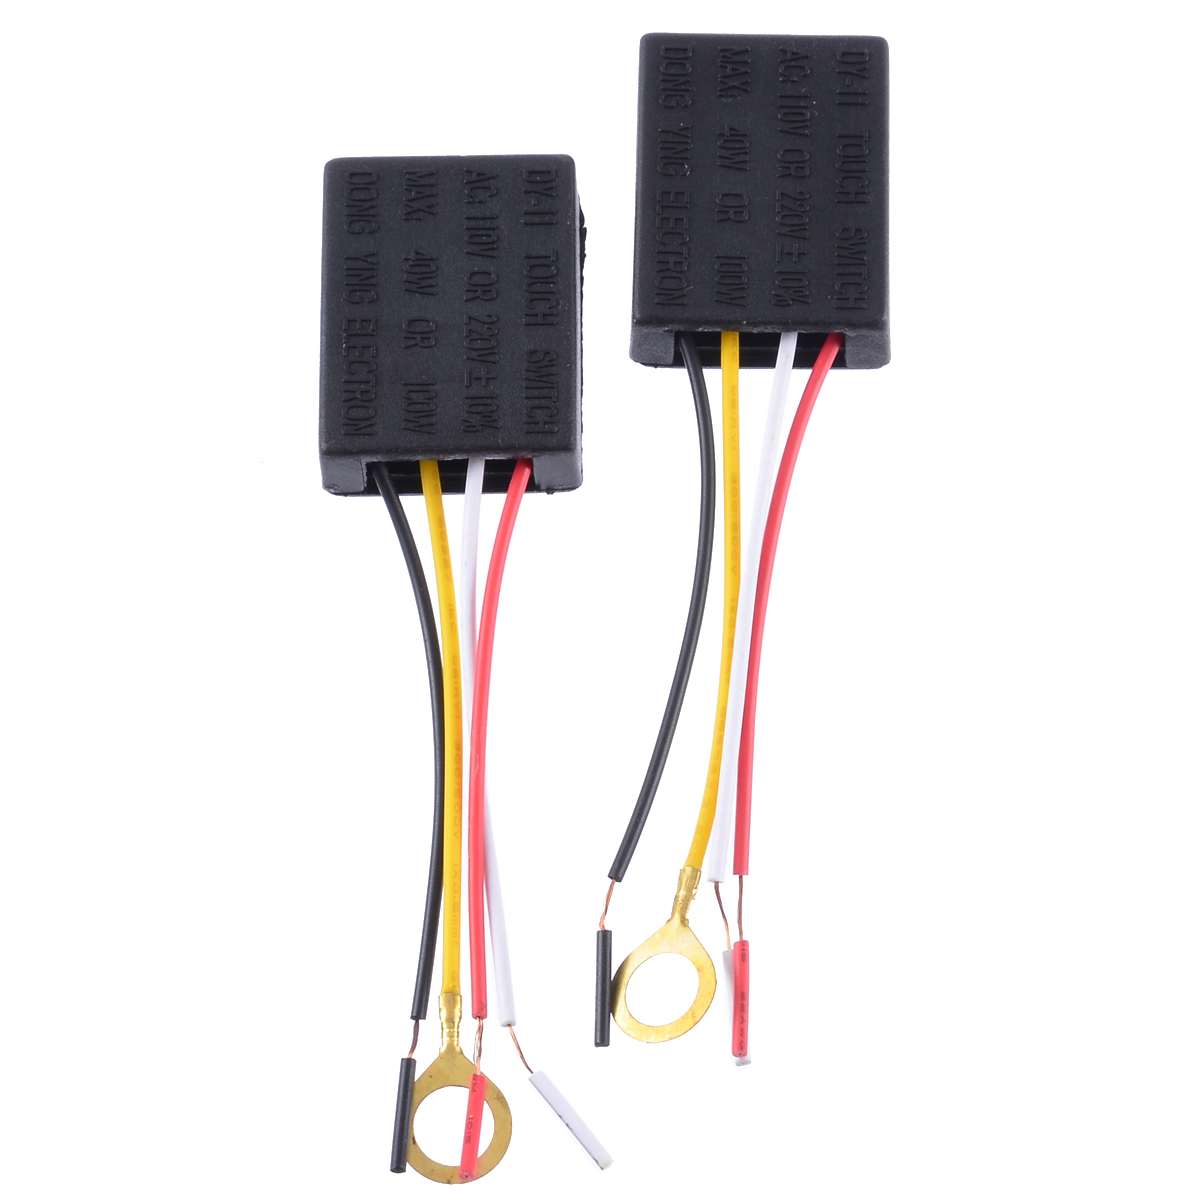 2pcs 3 way touch sensor switch control bulb control dimmer switch part for desk lamp ac 100 240v [ 1200 x 1200 Pixel ]